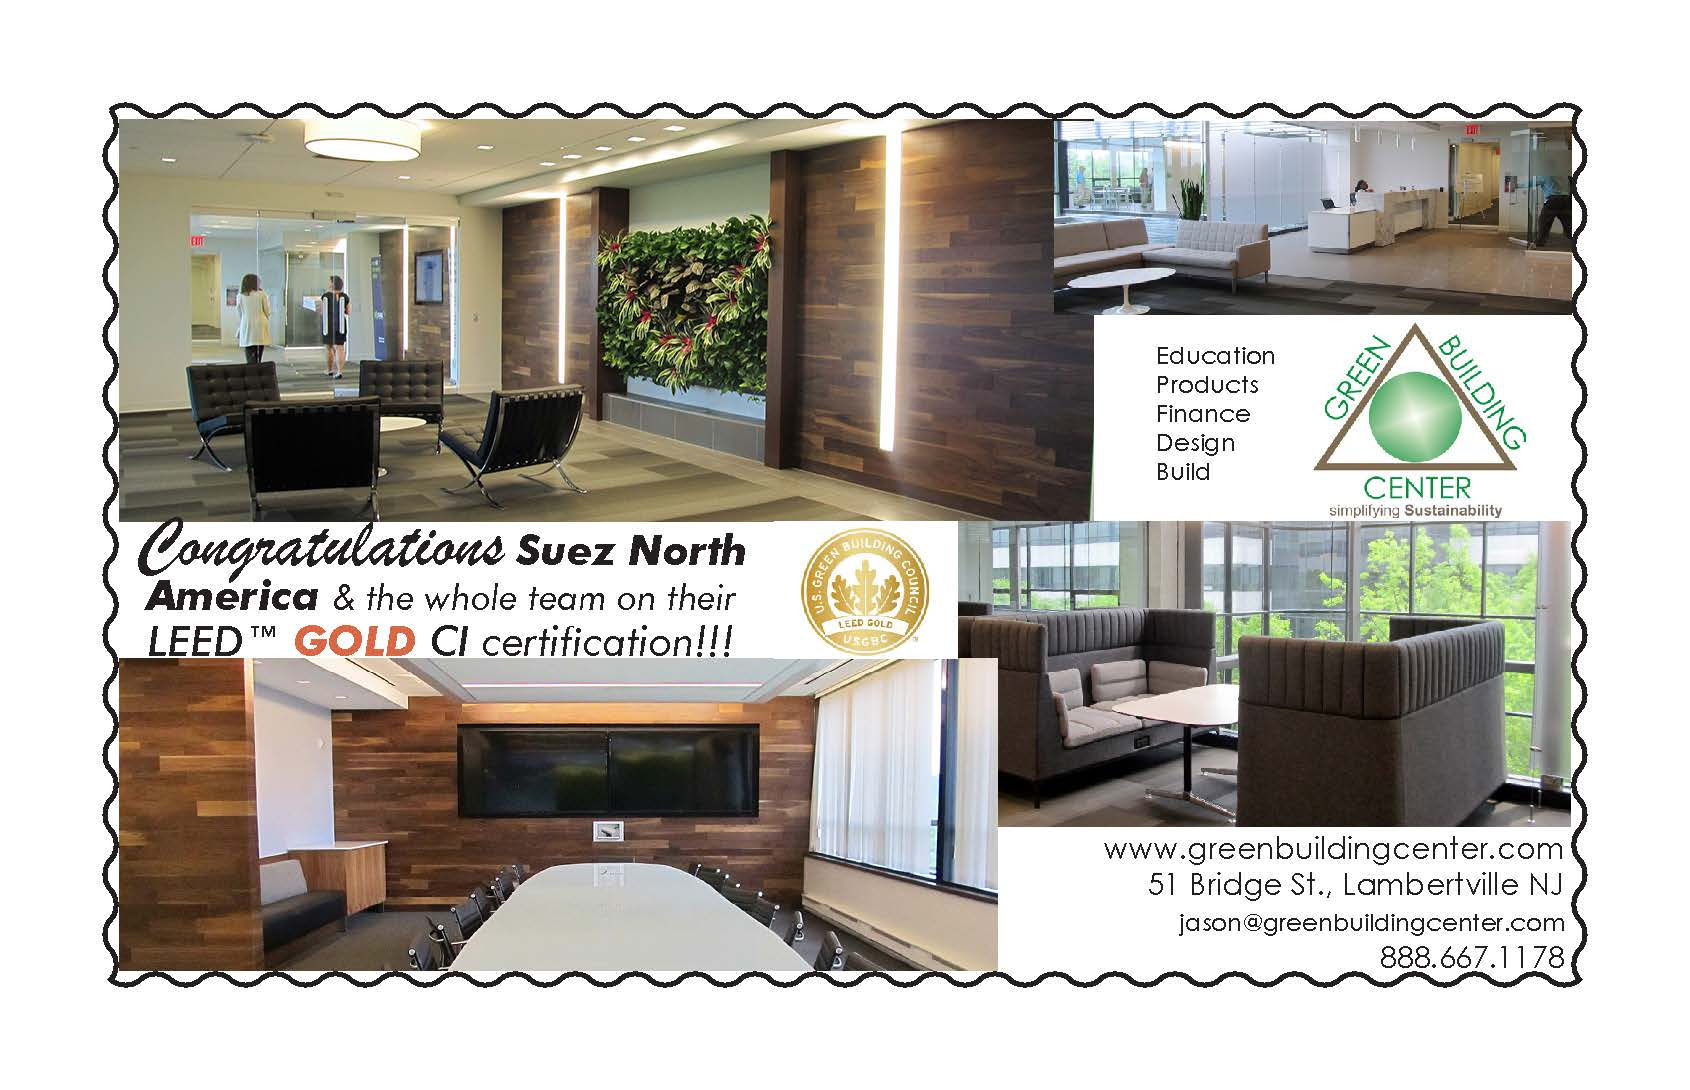 Visioning With A Sustainable Community As We Congratulate Suez North America On Their LEED Gold Certified Commericial Interior Corporate Headquarters